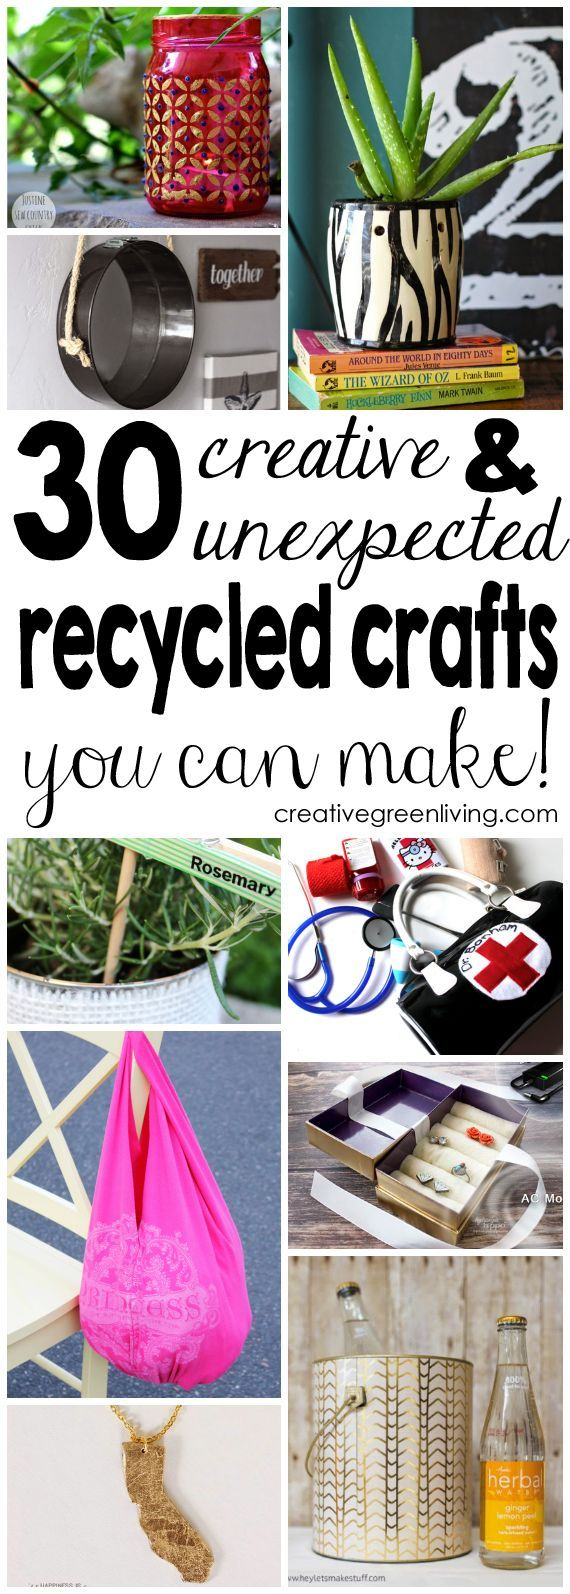 There are so many creative and unique recycled craft ideas in this post! I love the apron and mirrored wall hanging the most.